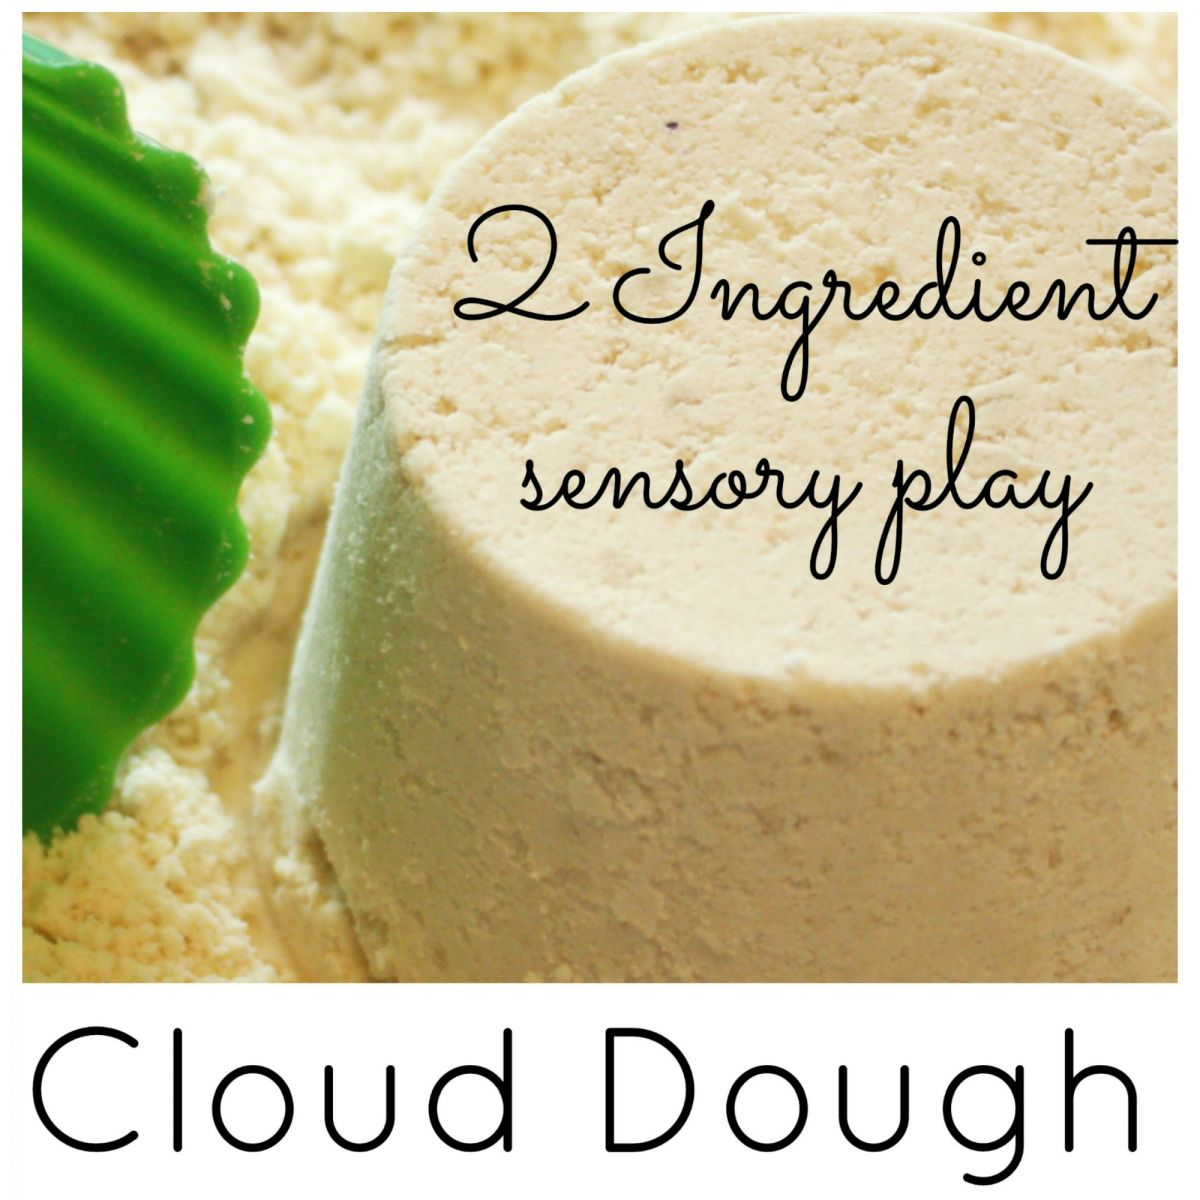 cloud dough recipe, sensory play dough